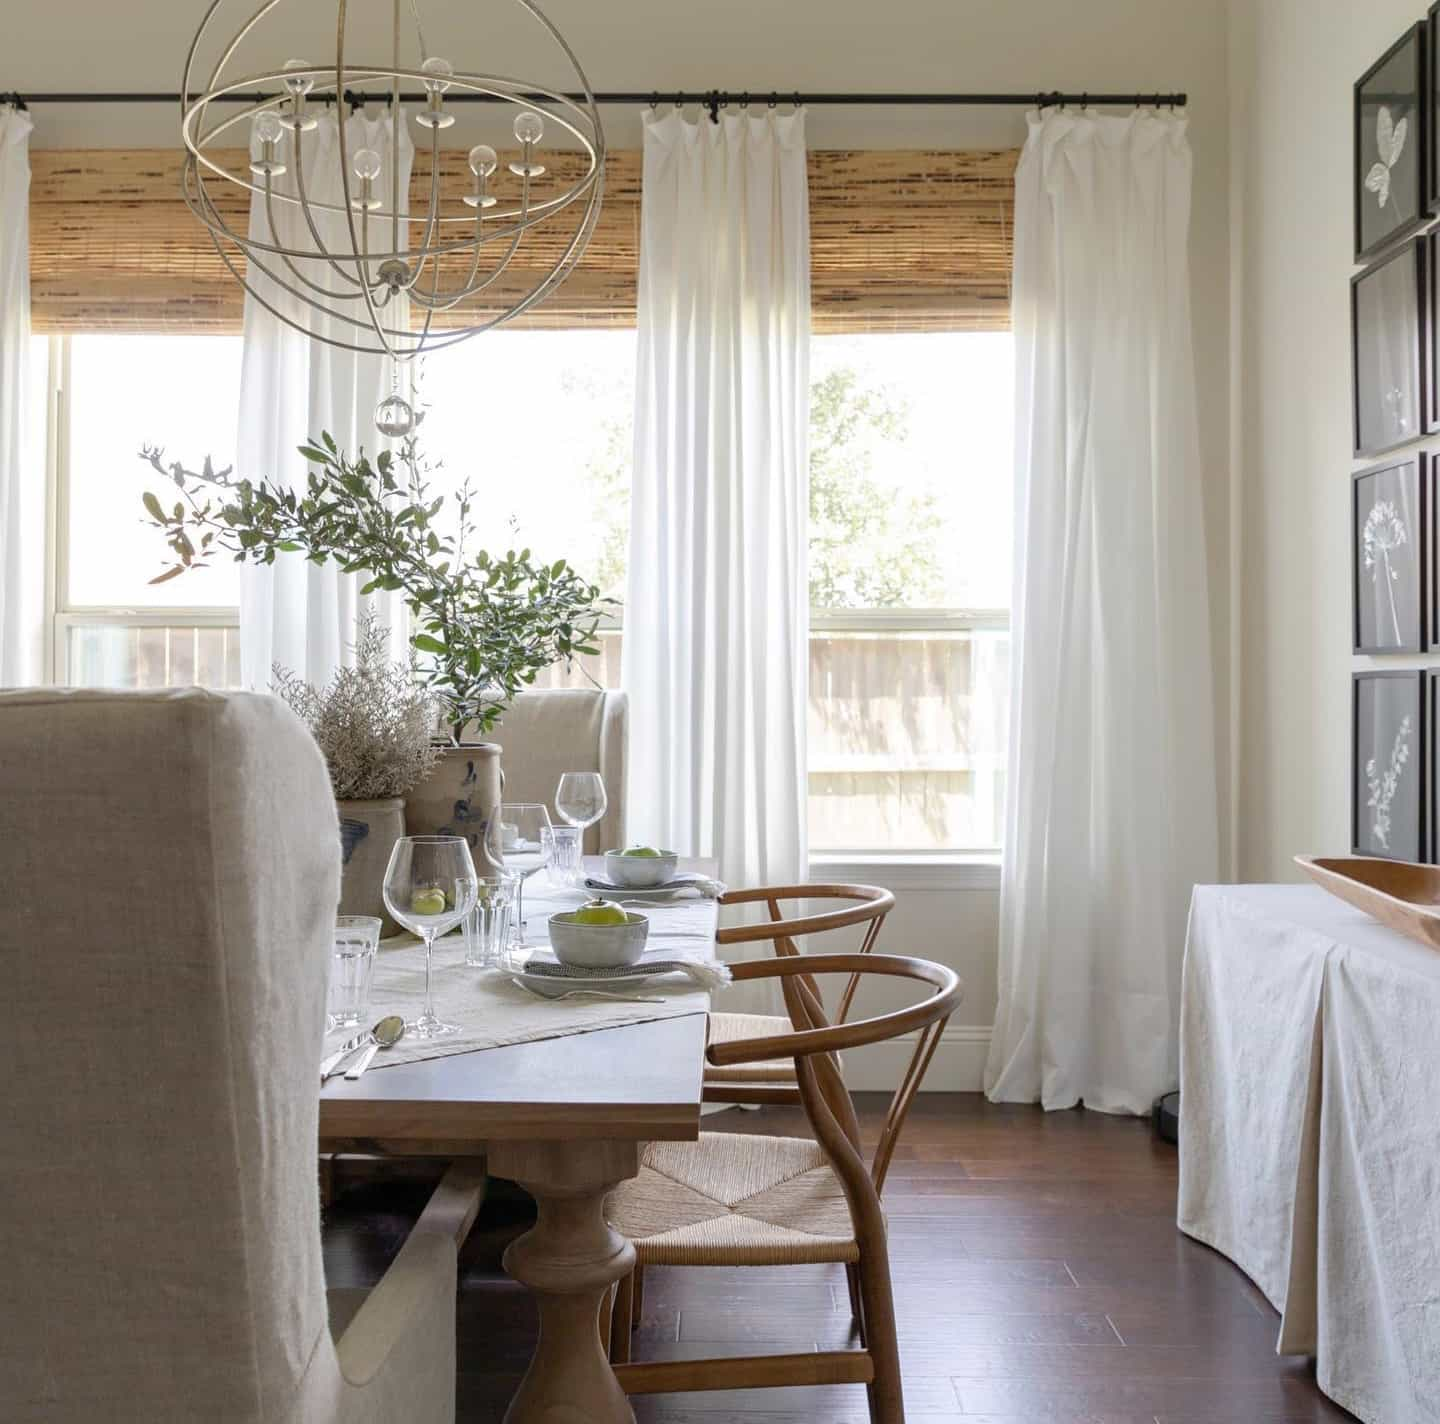 Modern farmhouse dining room with woven wood shades and white drapes over the windows.